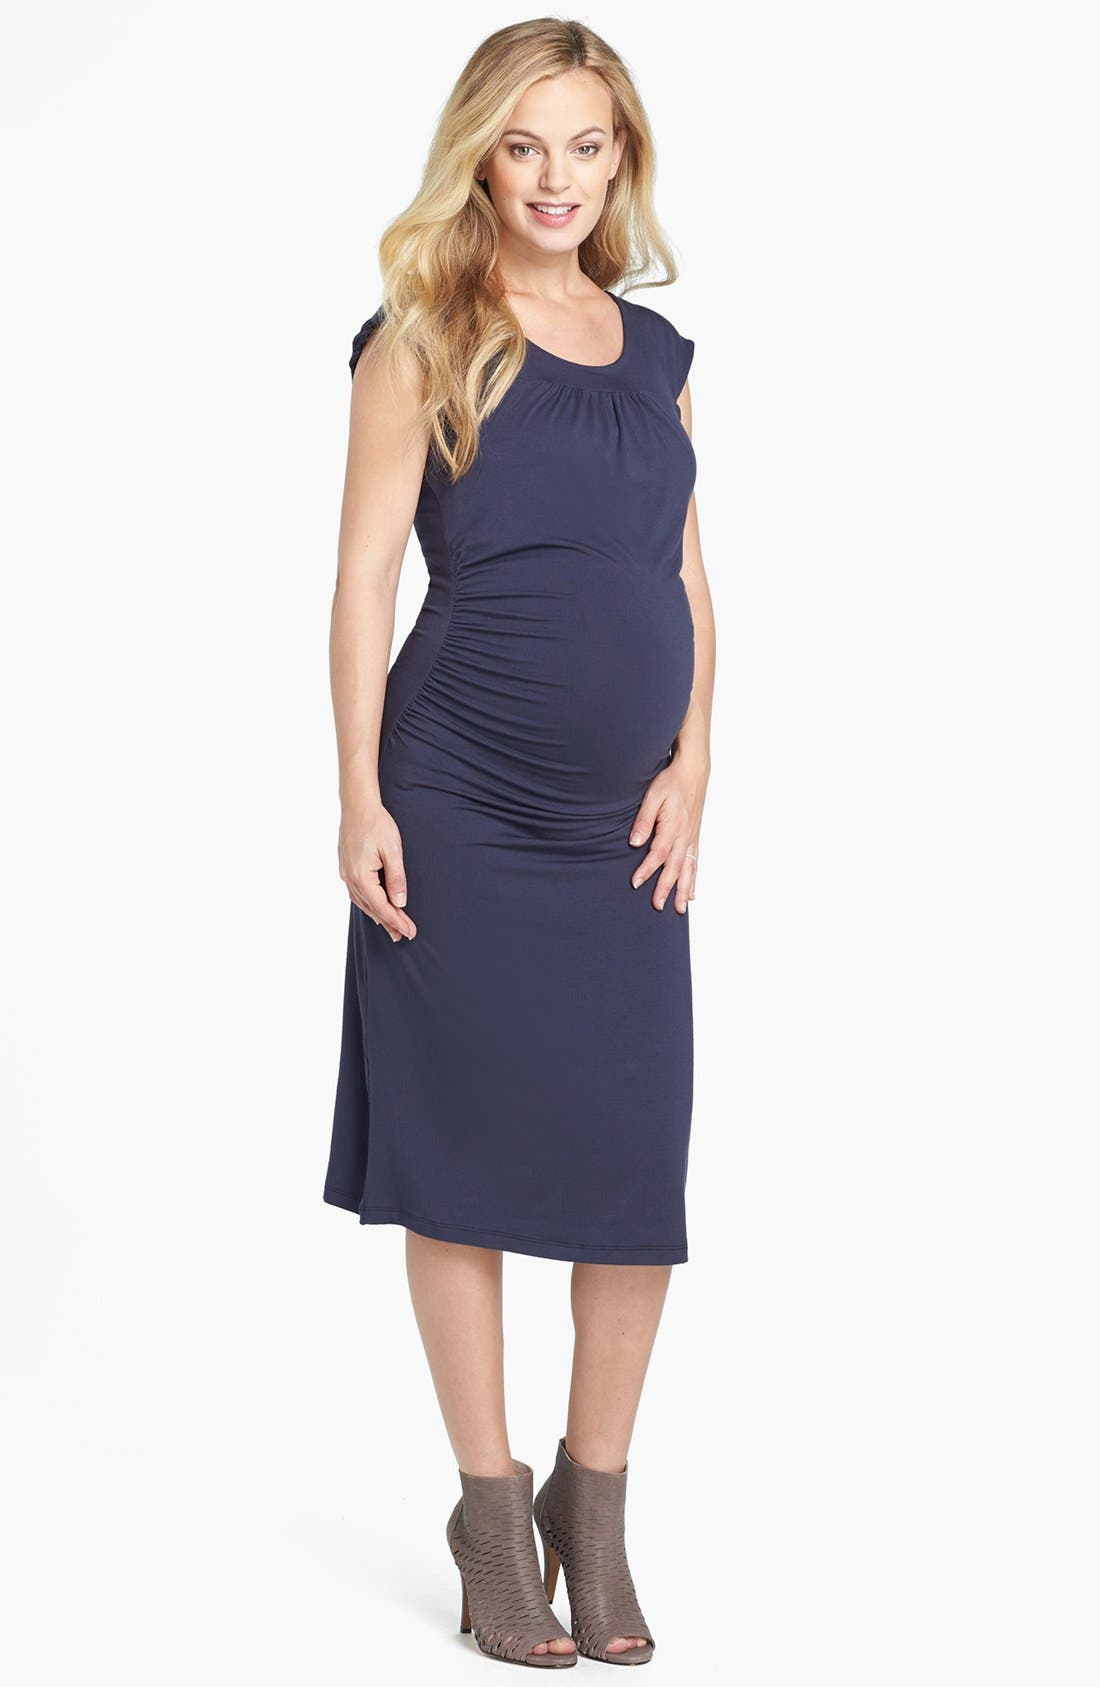 Alternate Image 1 Selected - Nom Maternity 'Sophie' Ruched Maternity Dress